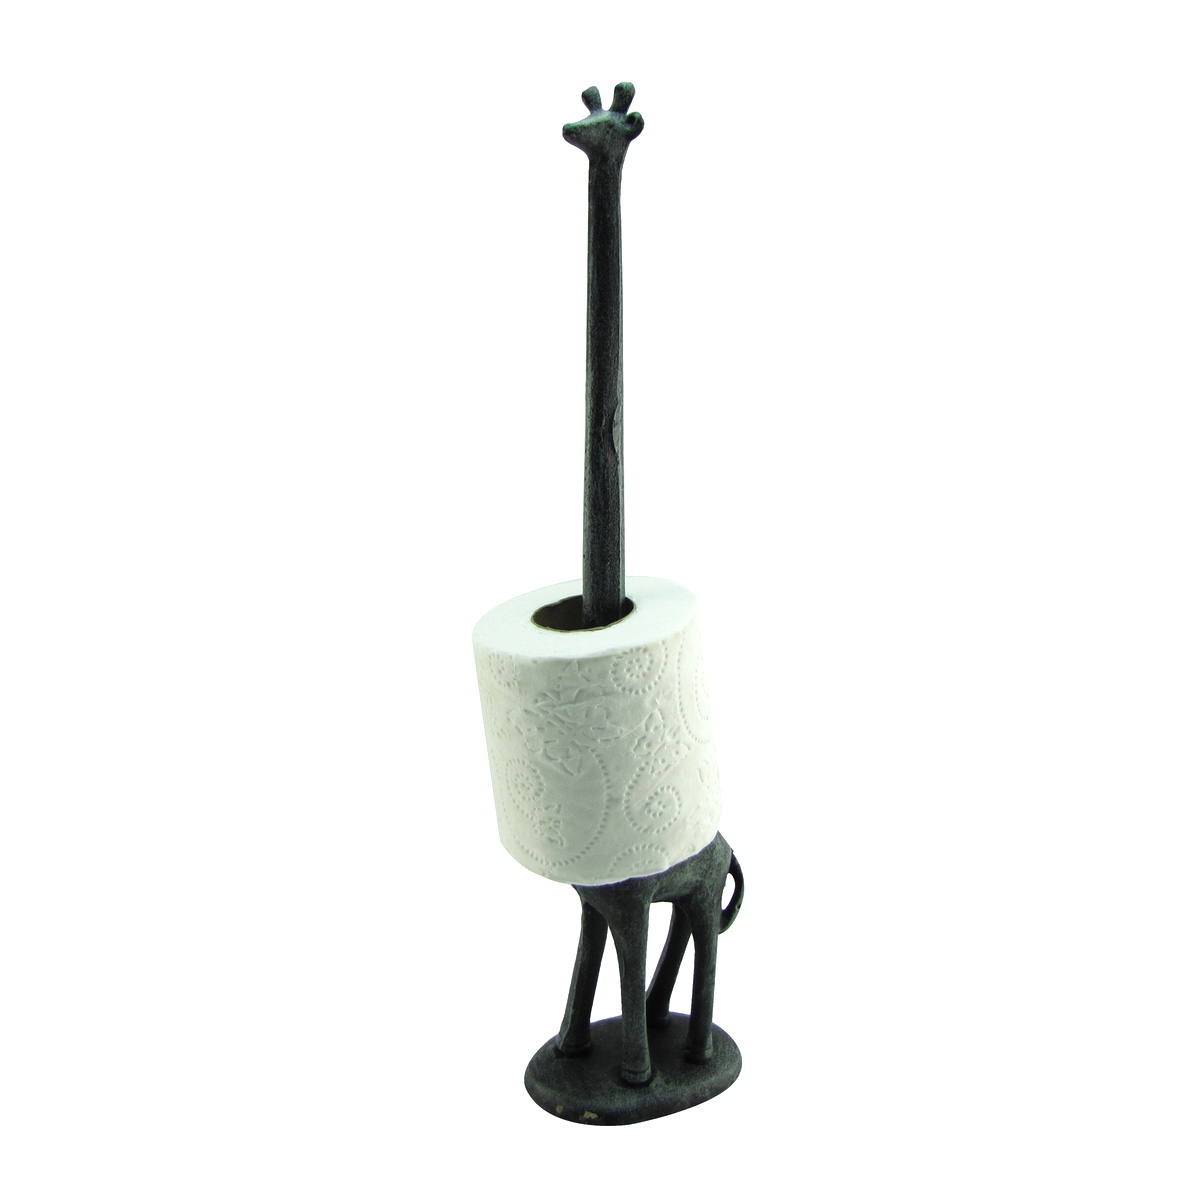 Metal Giraffe Bathroom Toilet Tissue Roll/Kitchen Paper Towel Holder Home  Decor   Walmart.com